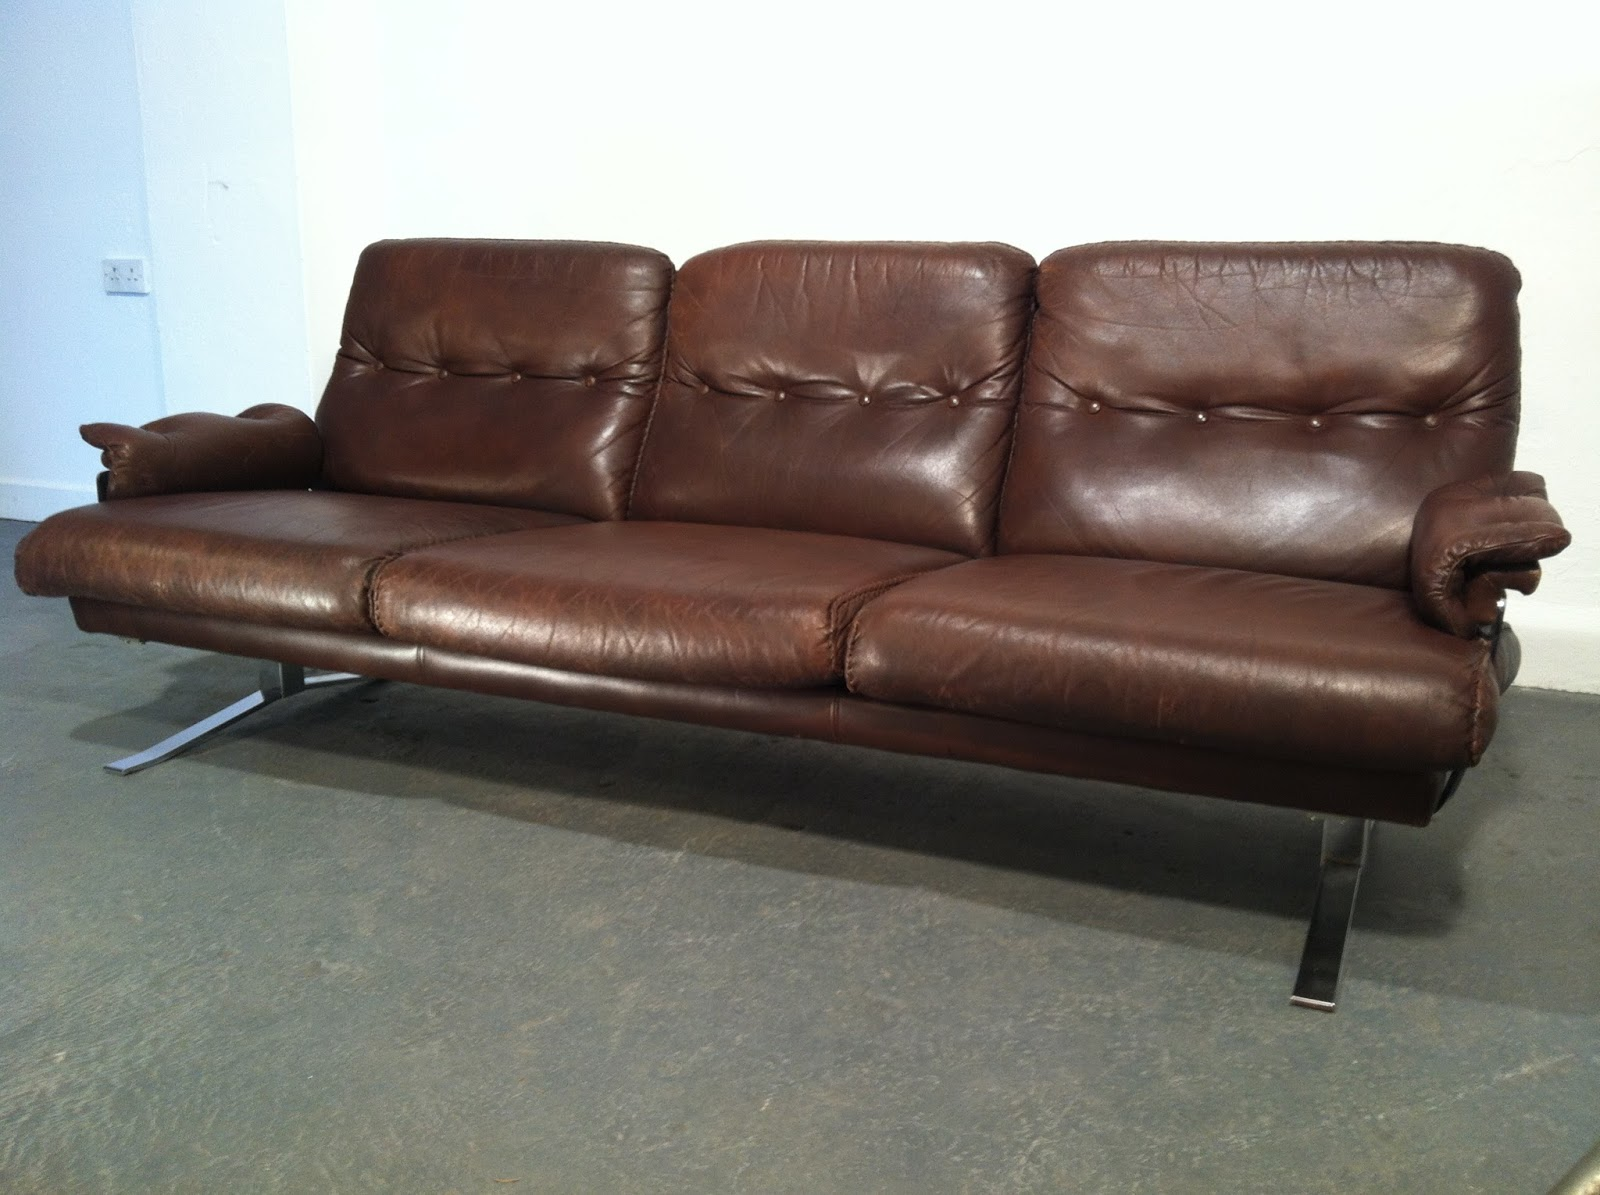 Vintage Furniture Ireland Ocd 1970s Leather And Chrome Sofa